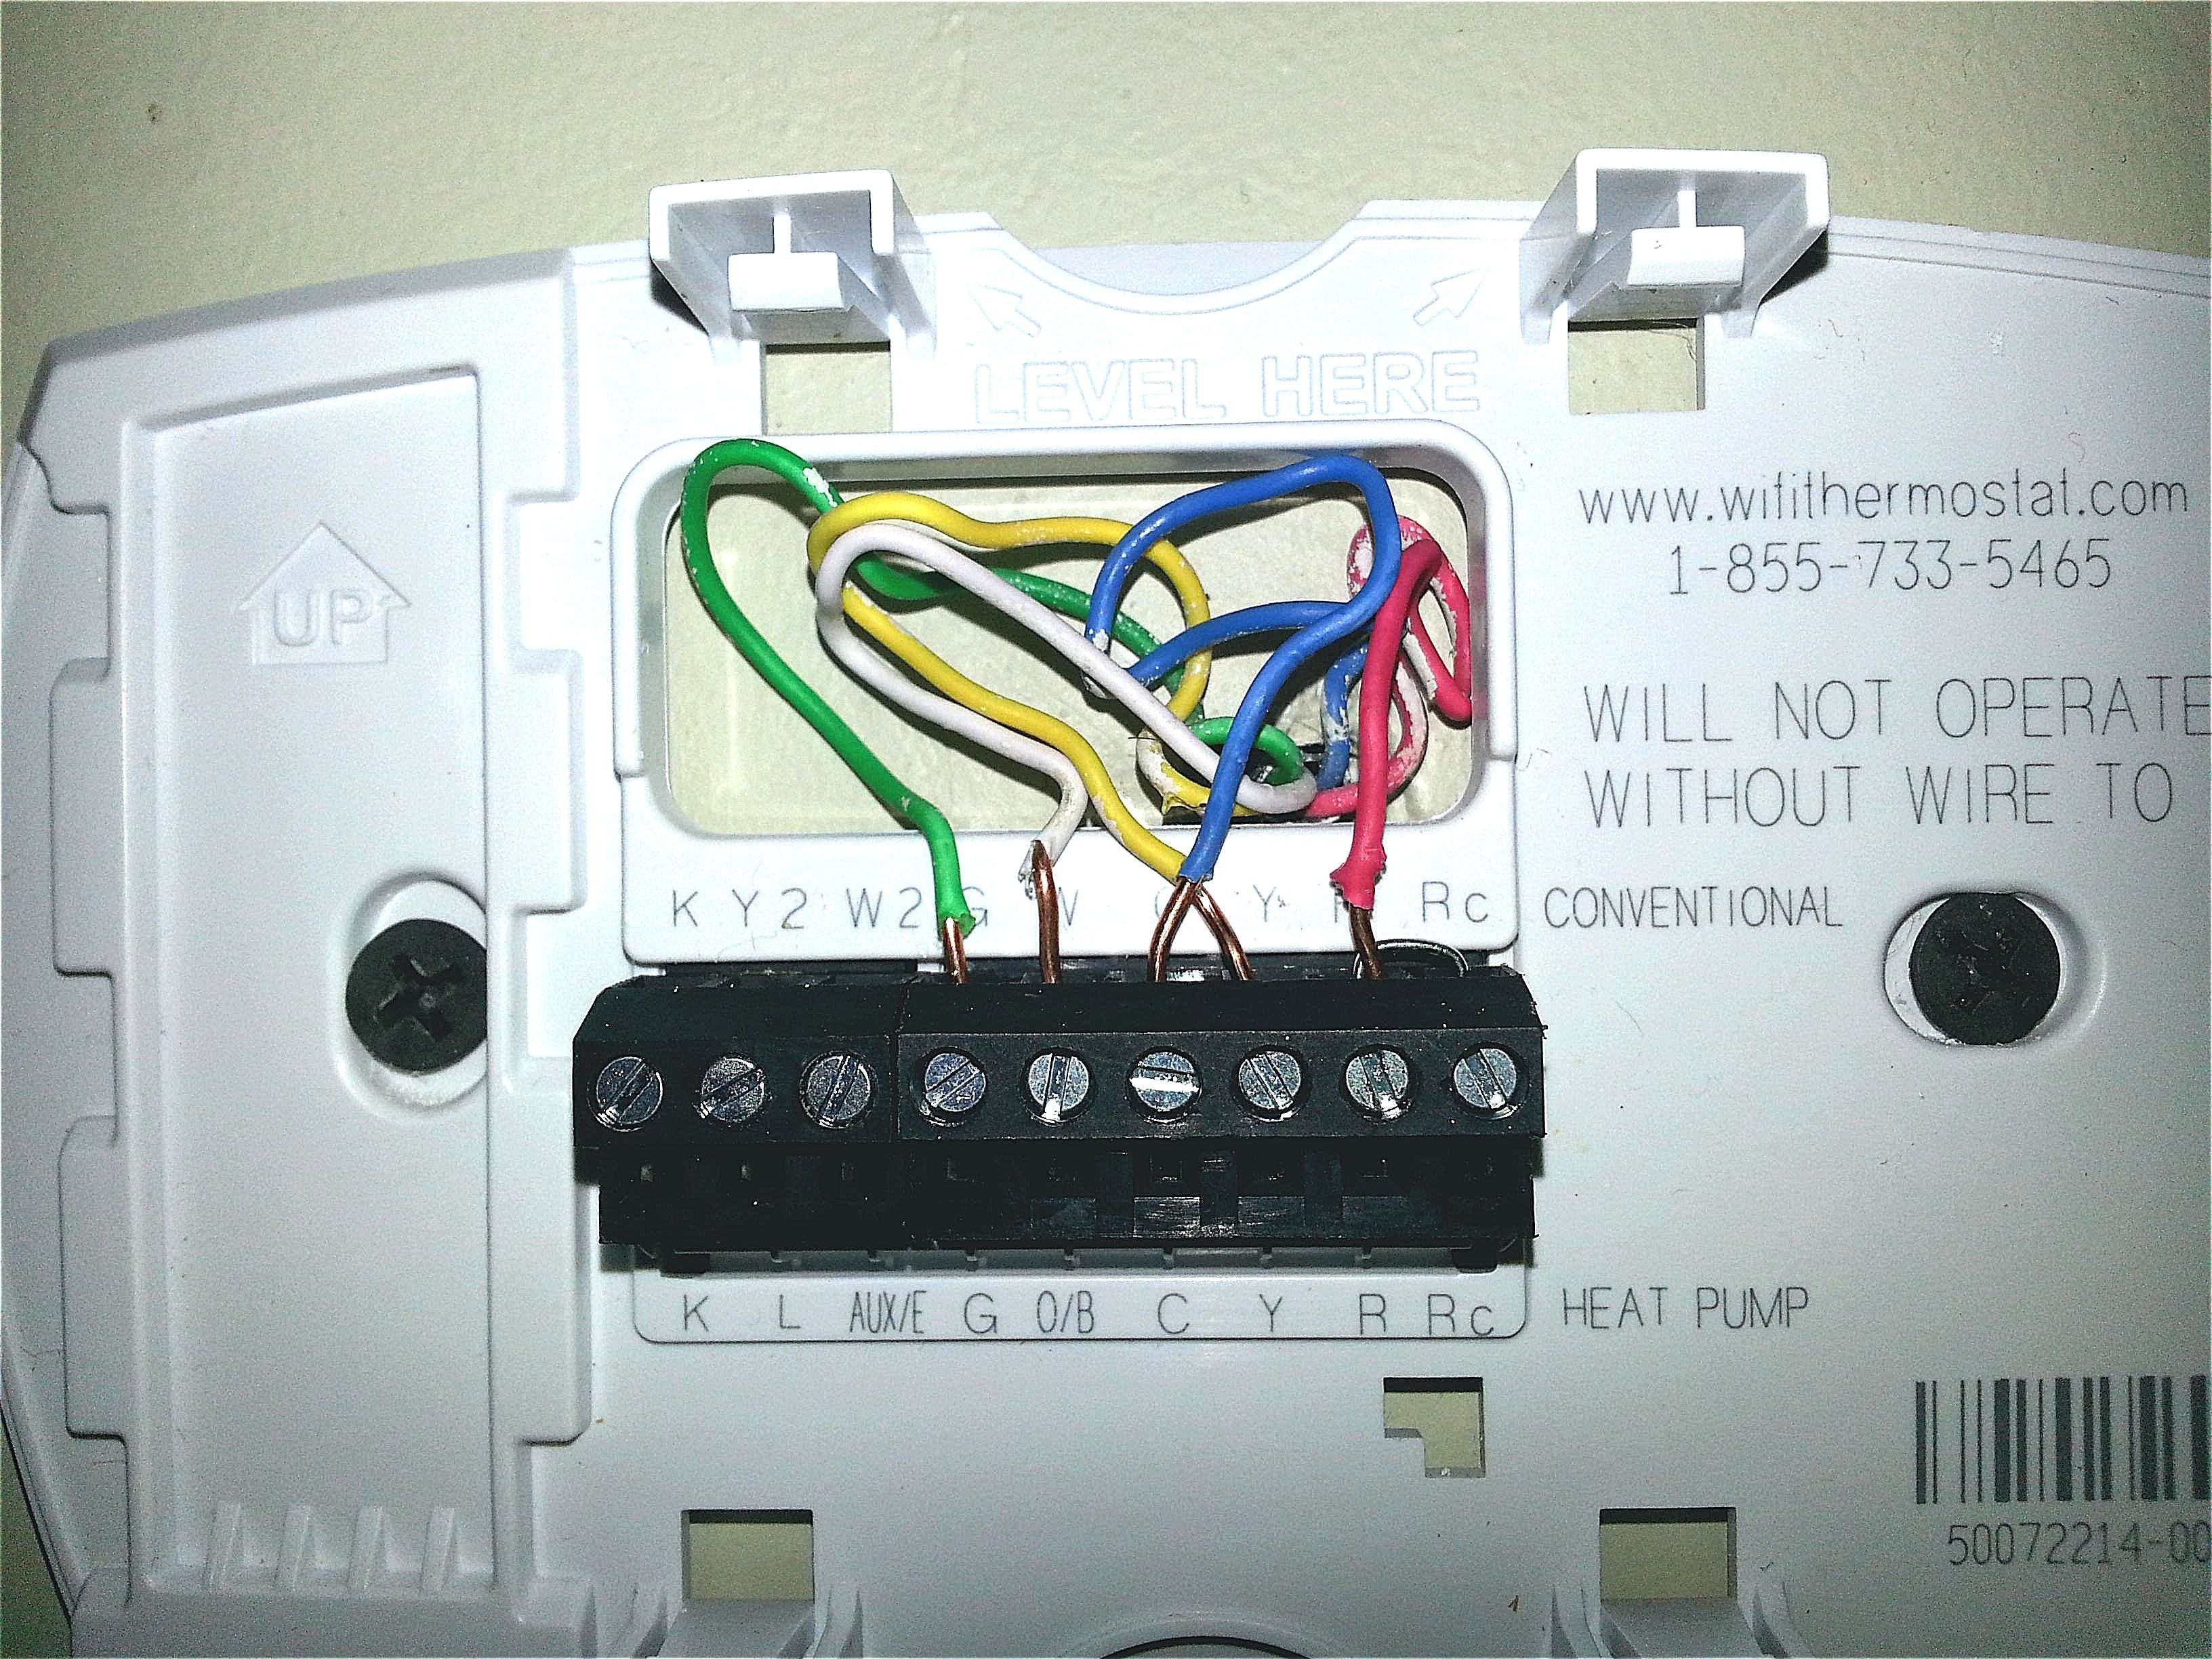 th5220d1003 wiring diagram honeywell th5220d1003 wiring diagram honeywell th5220d1003 wiring diagram | free wiring diagram #2